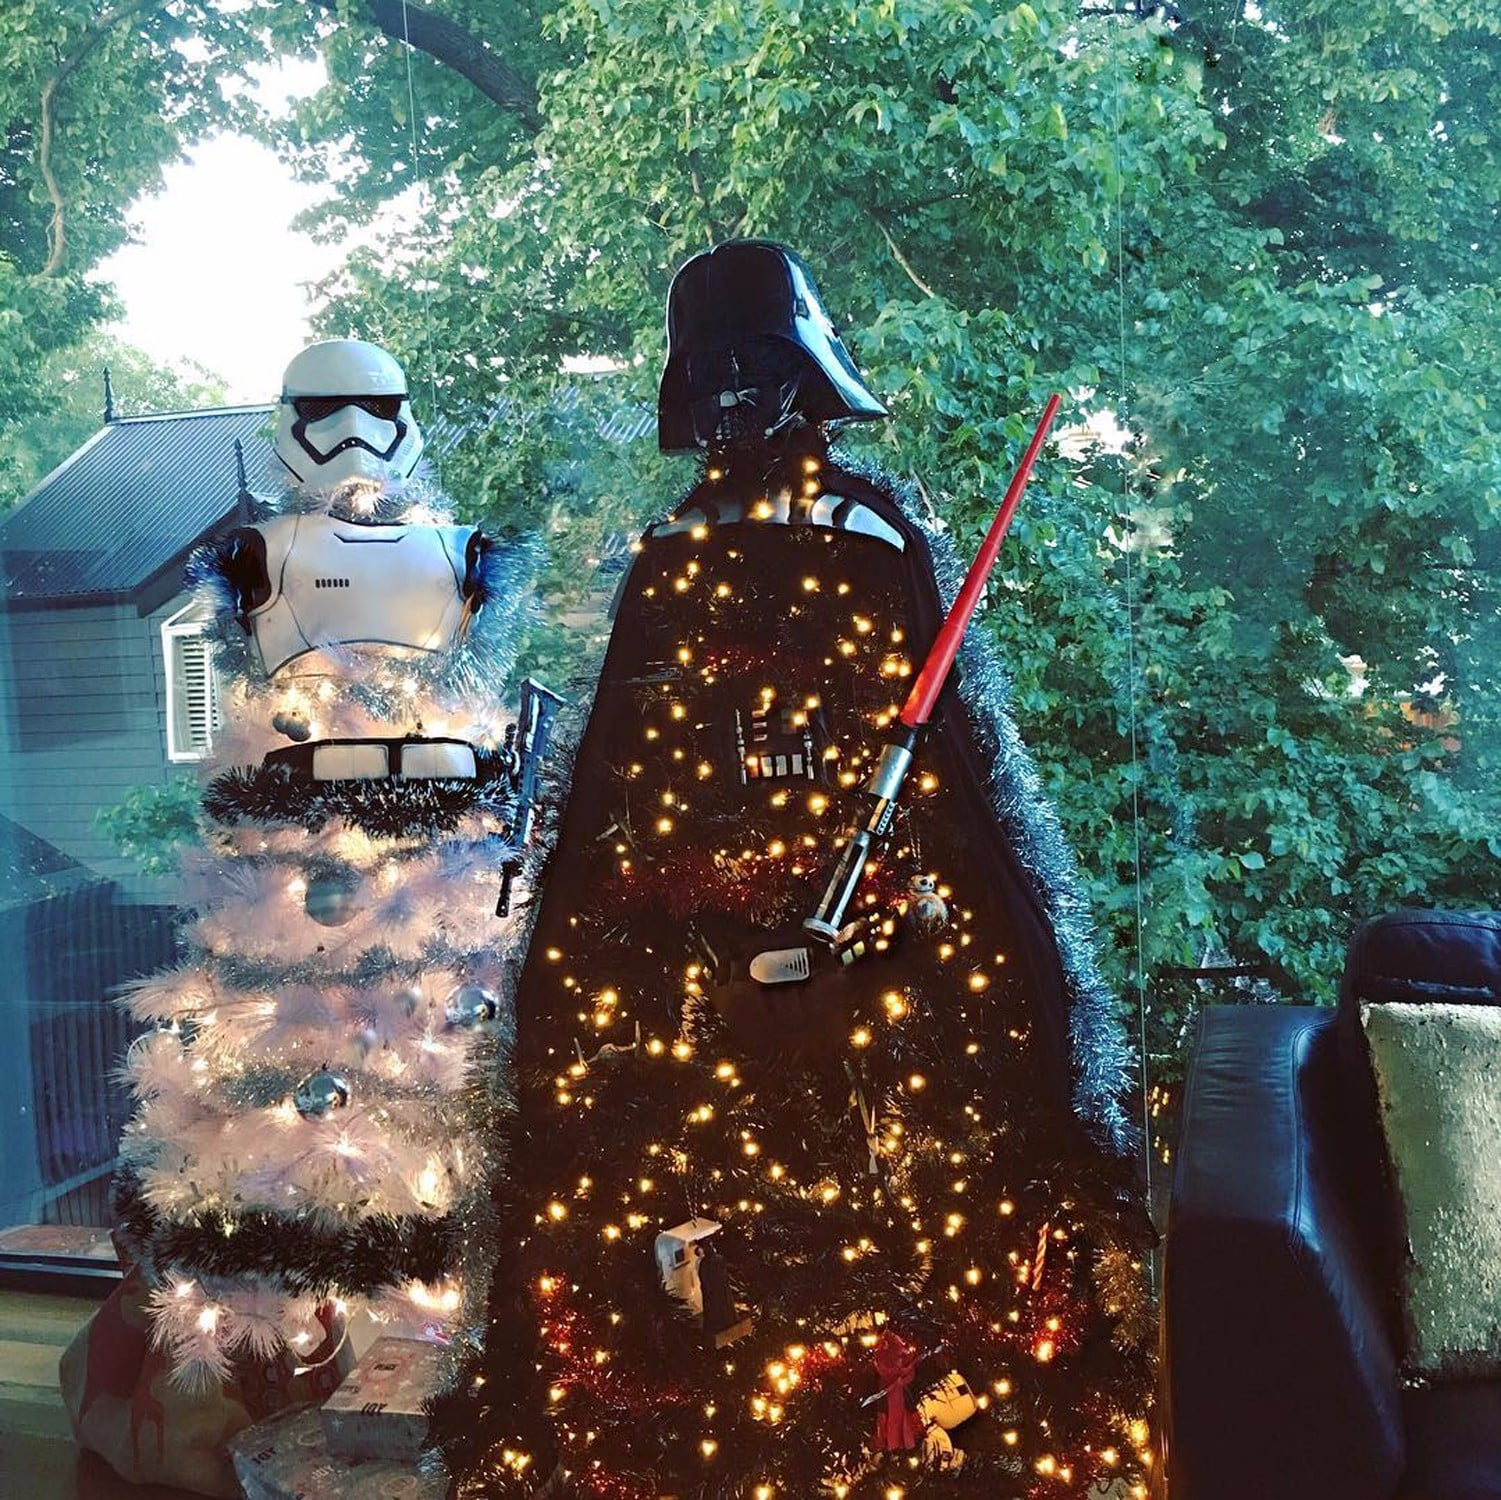 star wars christmas trees popsugar celebrity australia - Star Wars Christmas Decorations